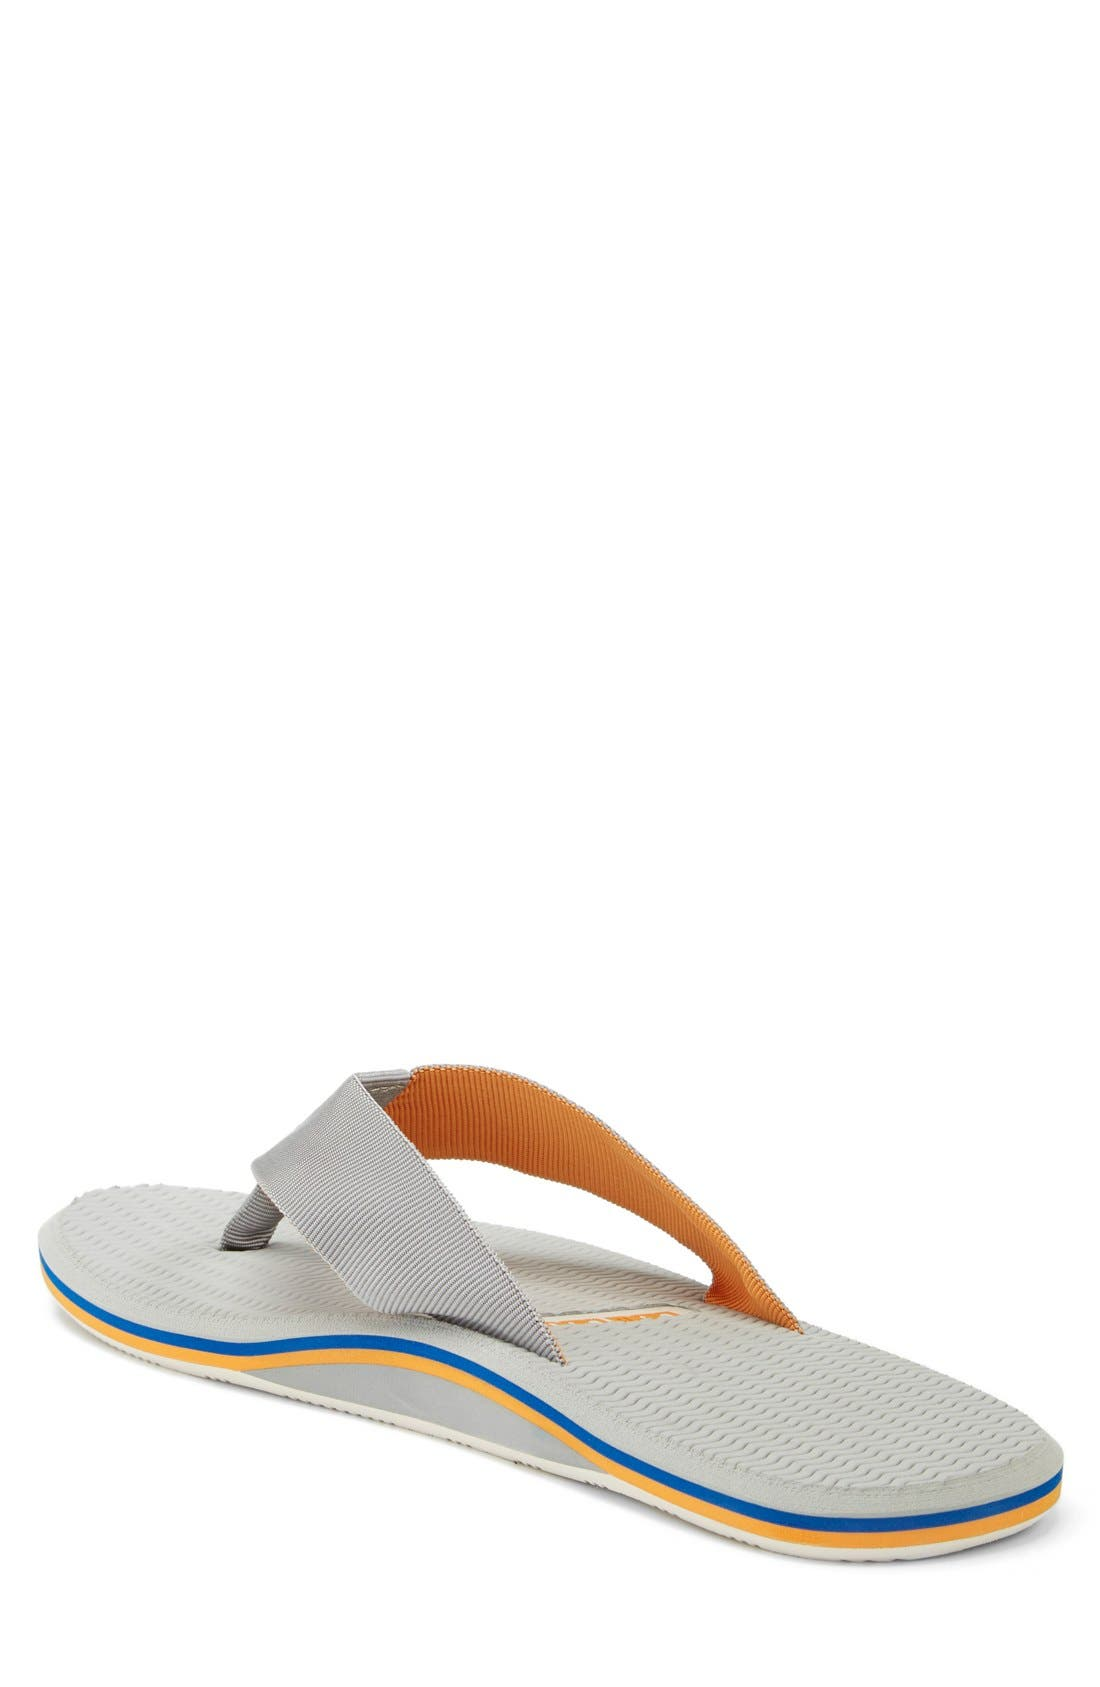 'Dunes' Flip Flop,                             Alternate thumbnail 2, color,                             Grey/ Blue/ Orange